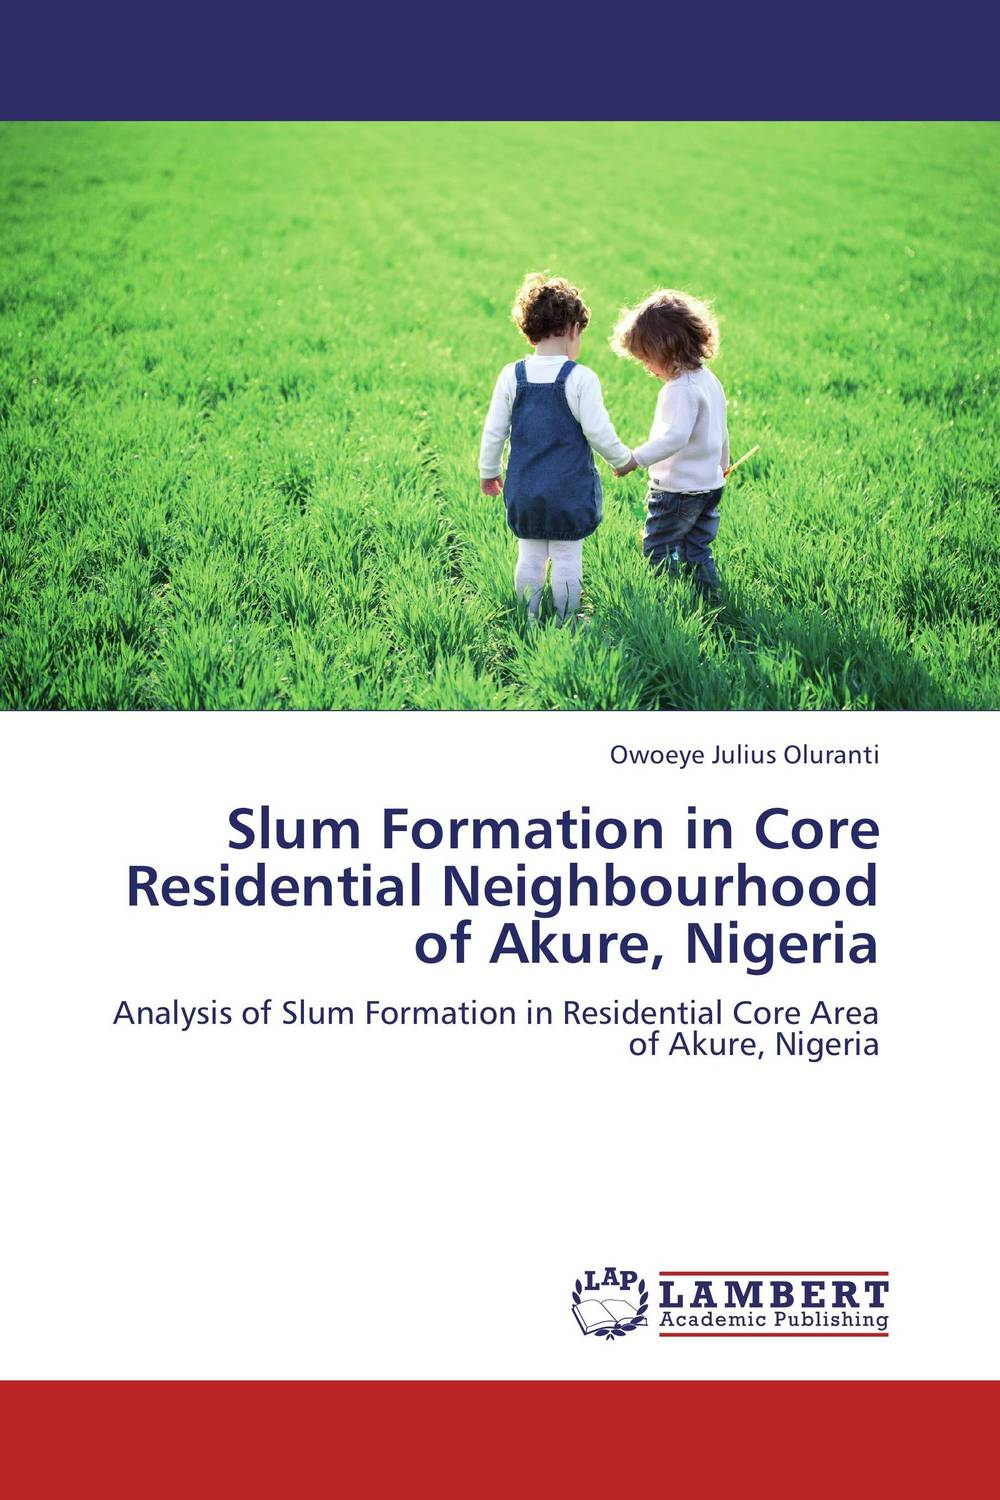 Slum Formation in Core Residential Neighbourhood of Akure, Nigeria slum upgrading and its contribution to environment sustainability